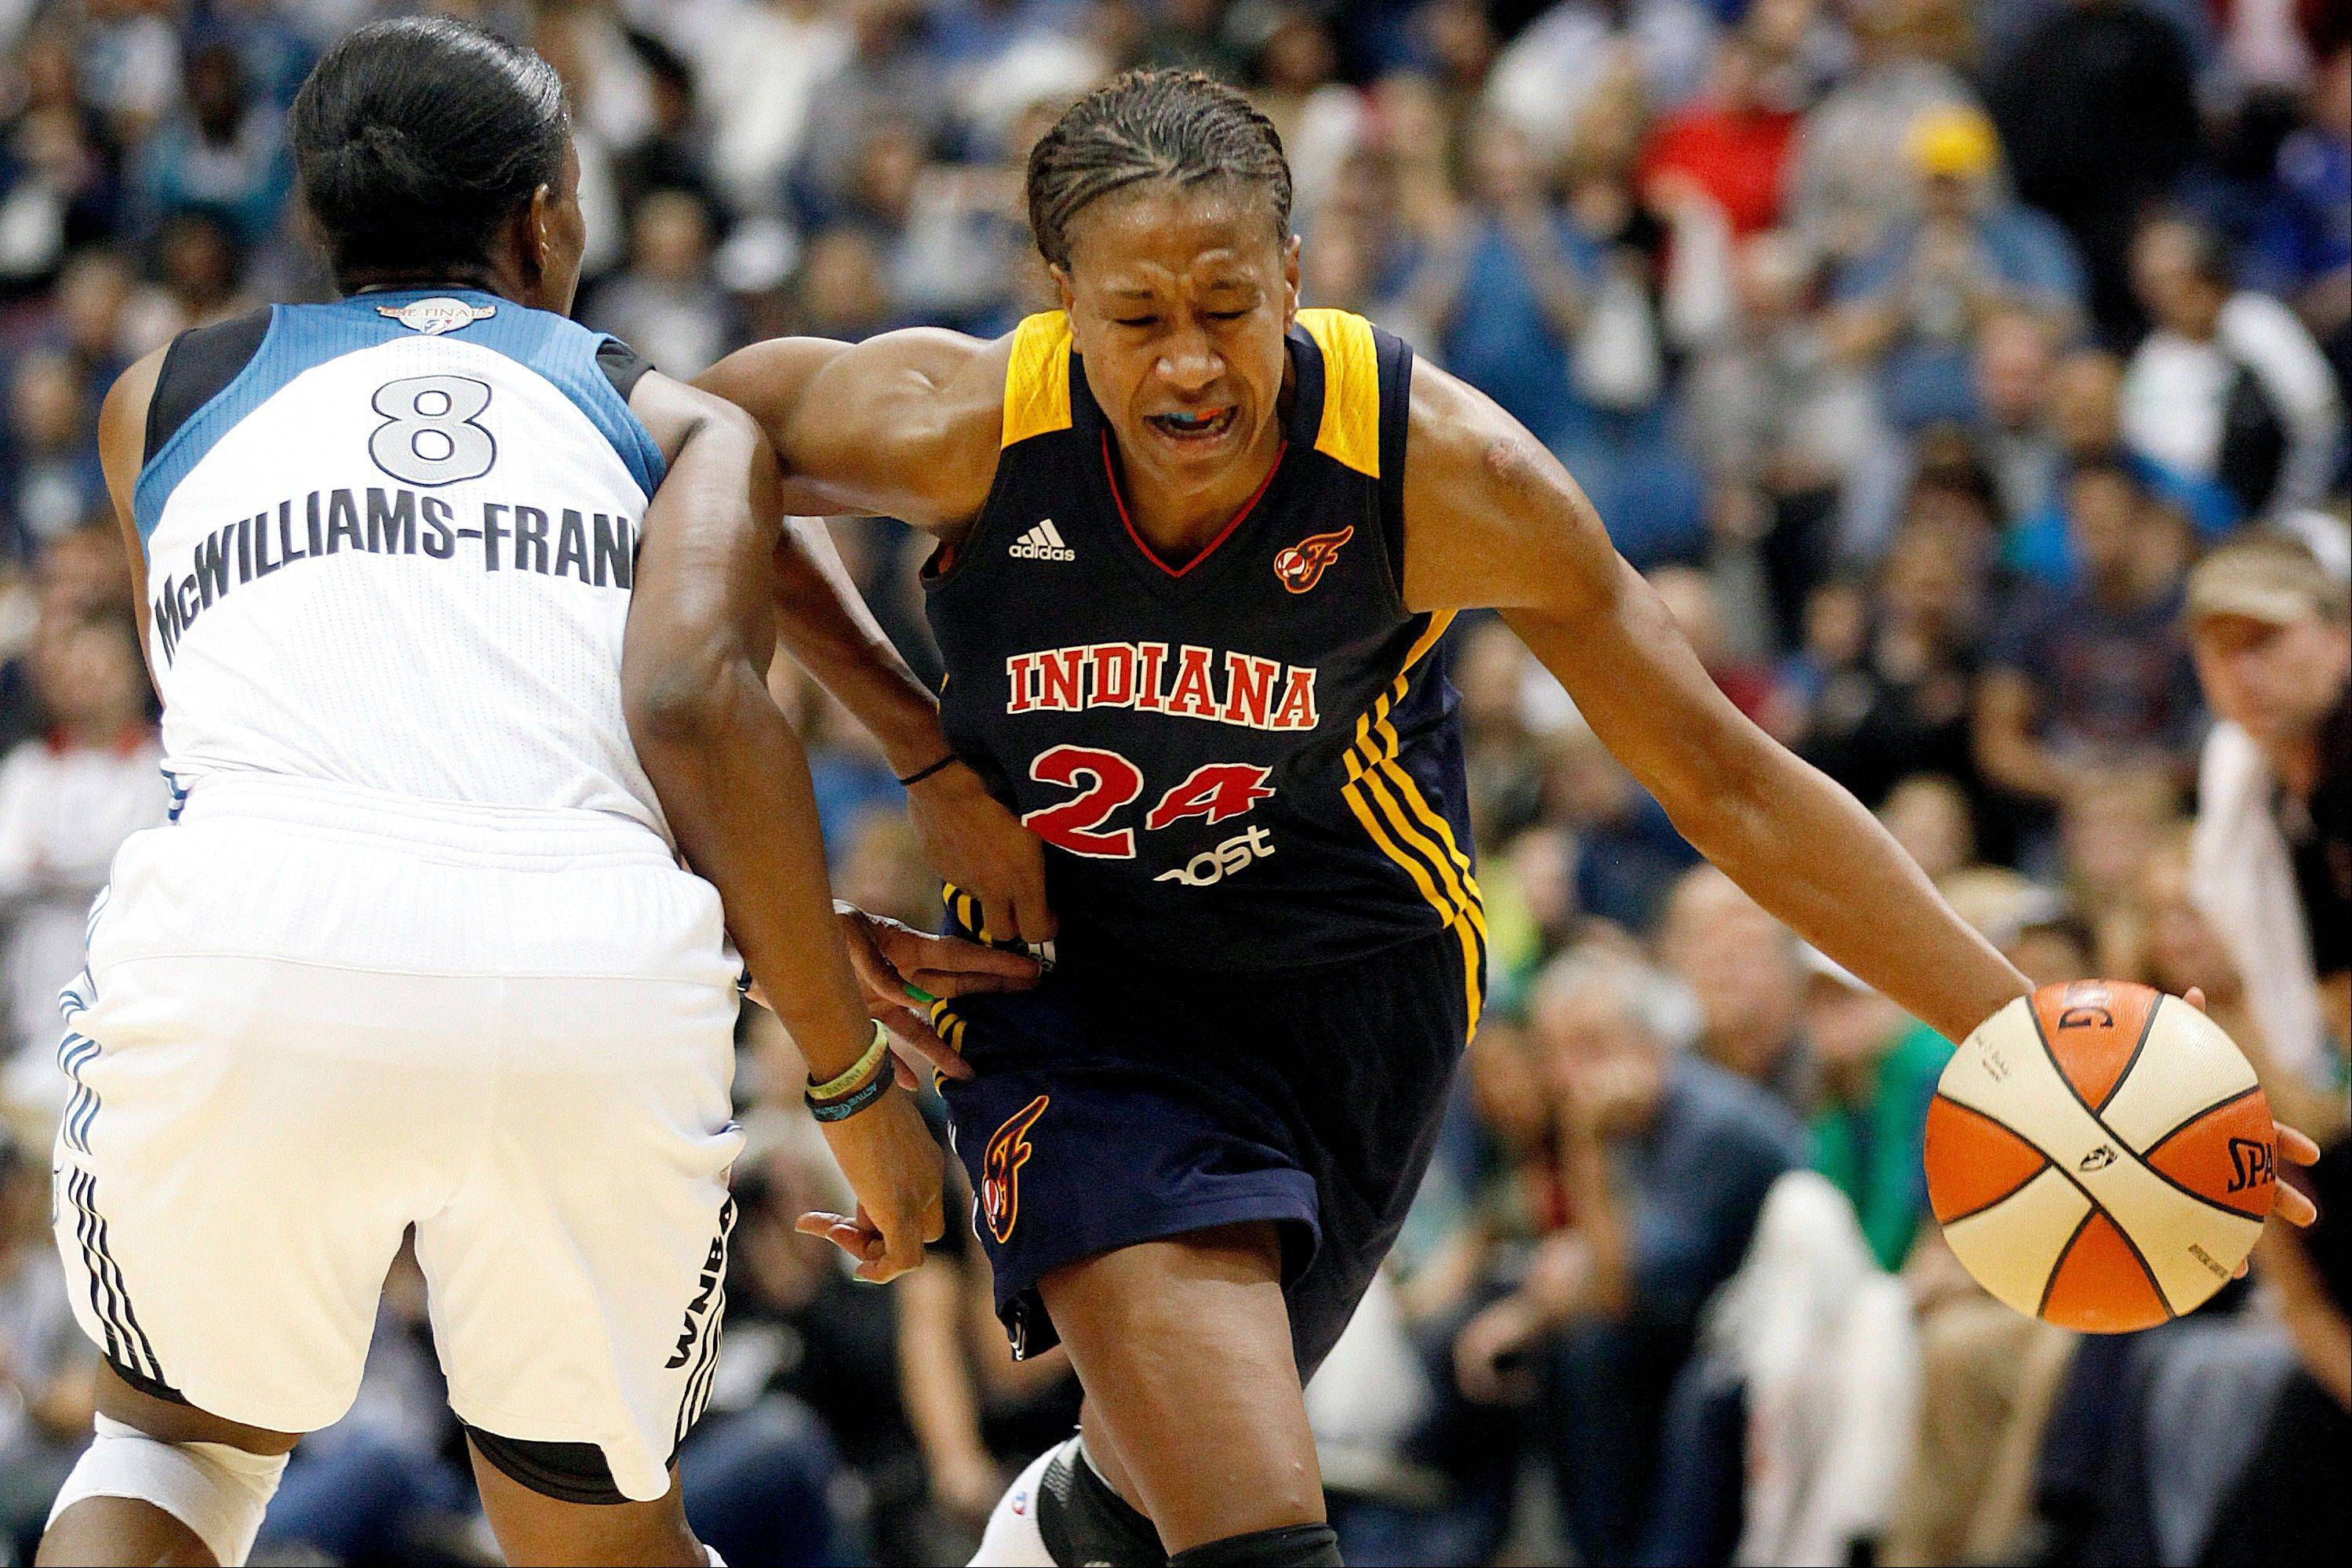 Indiana Fever forward Tamika Catchings (24), a former state champion at Stevenson High School, was voted to the All-WNBA first team for the 2012 season. It marks the seventh time that Catchings has earned the honor.